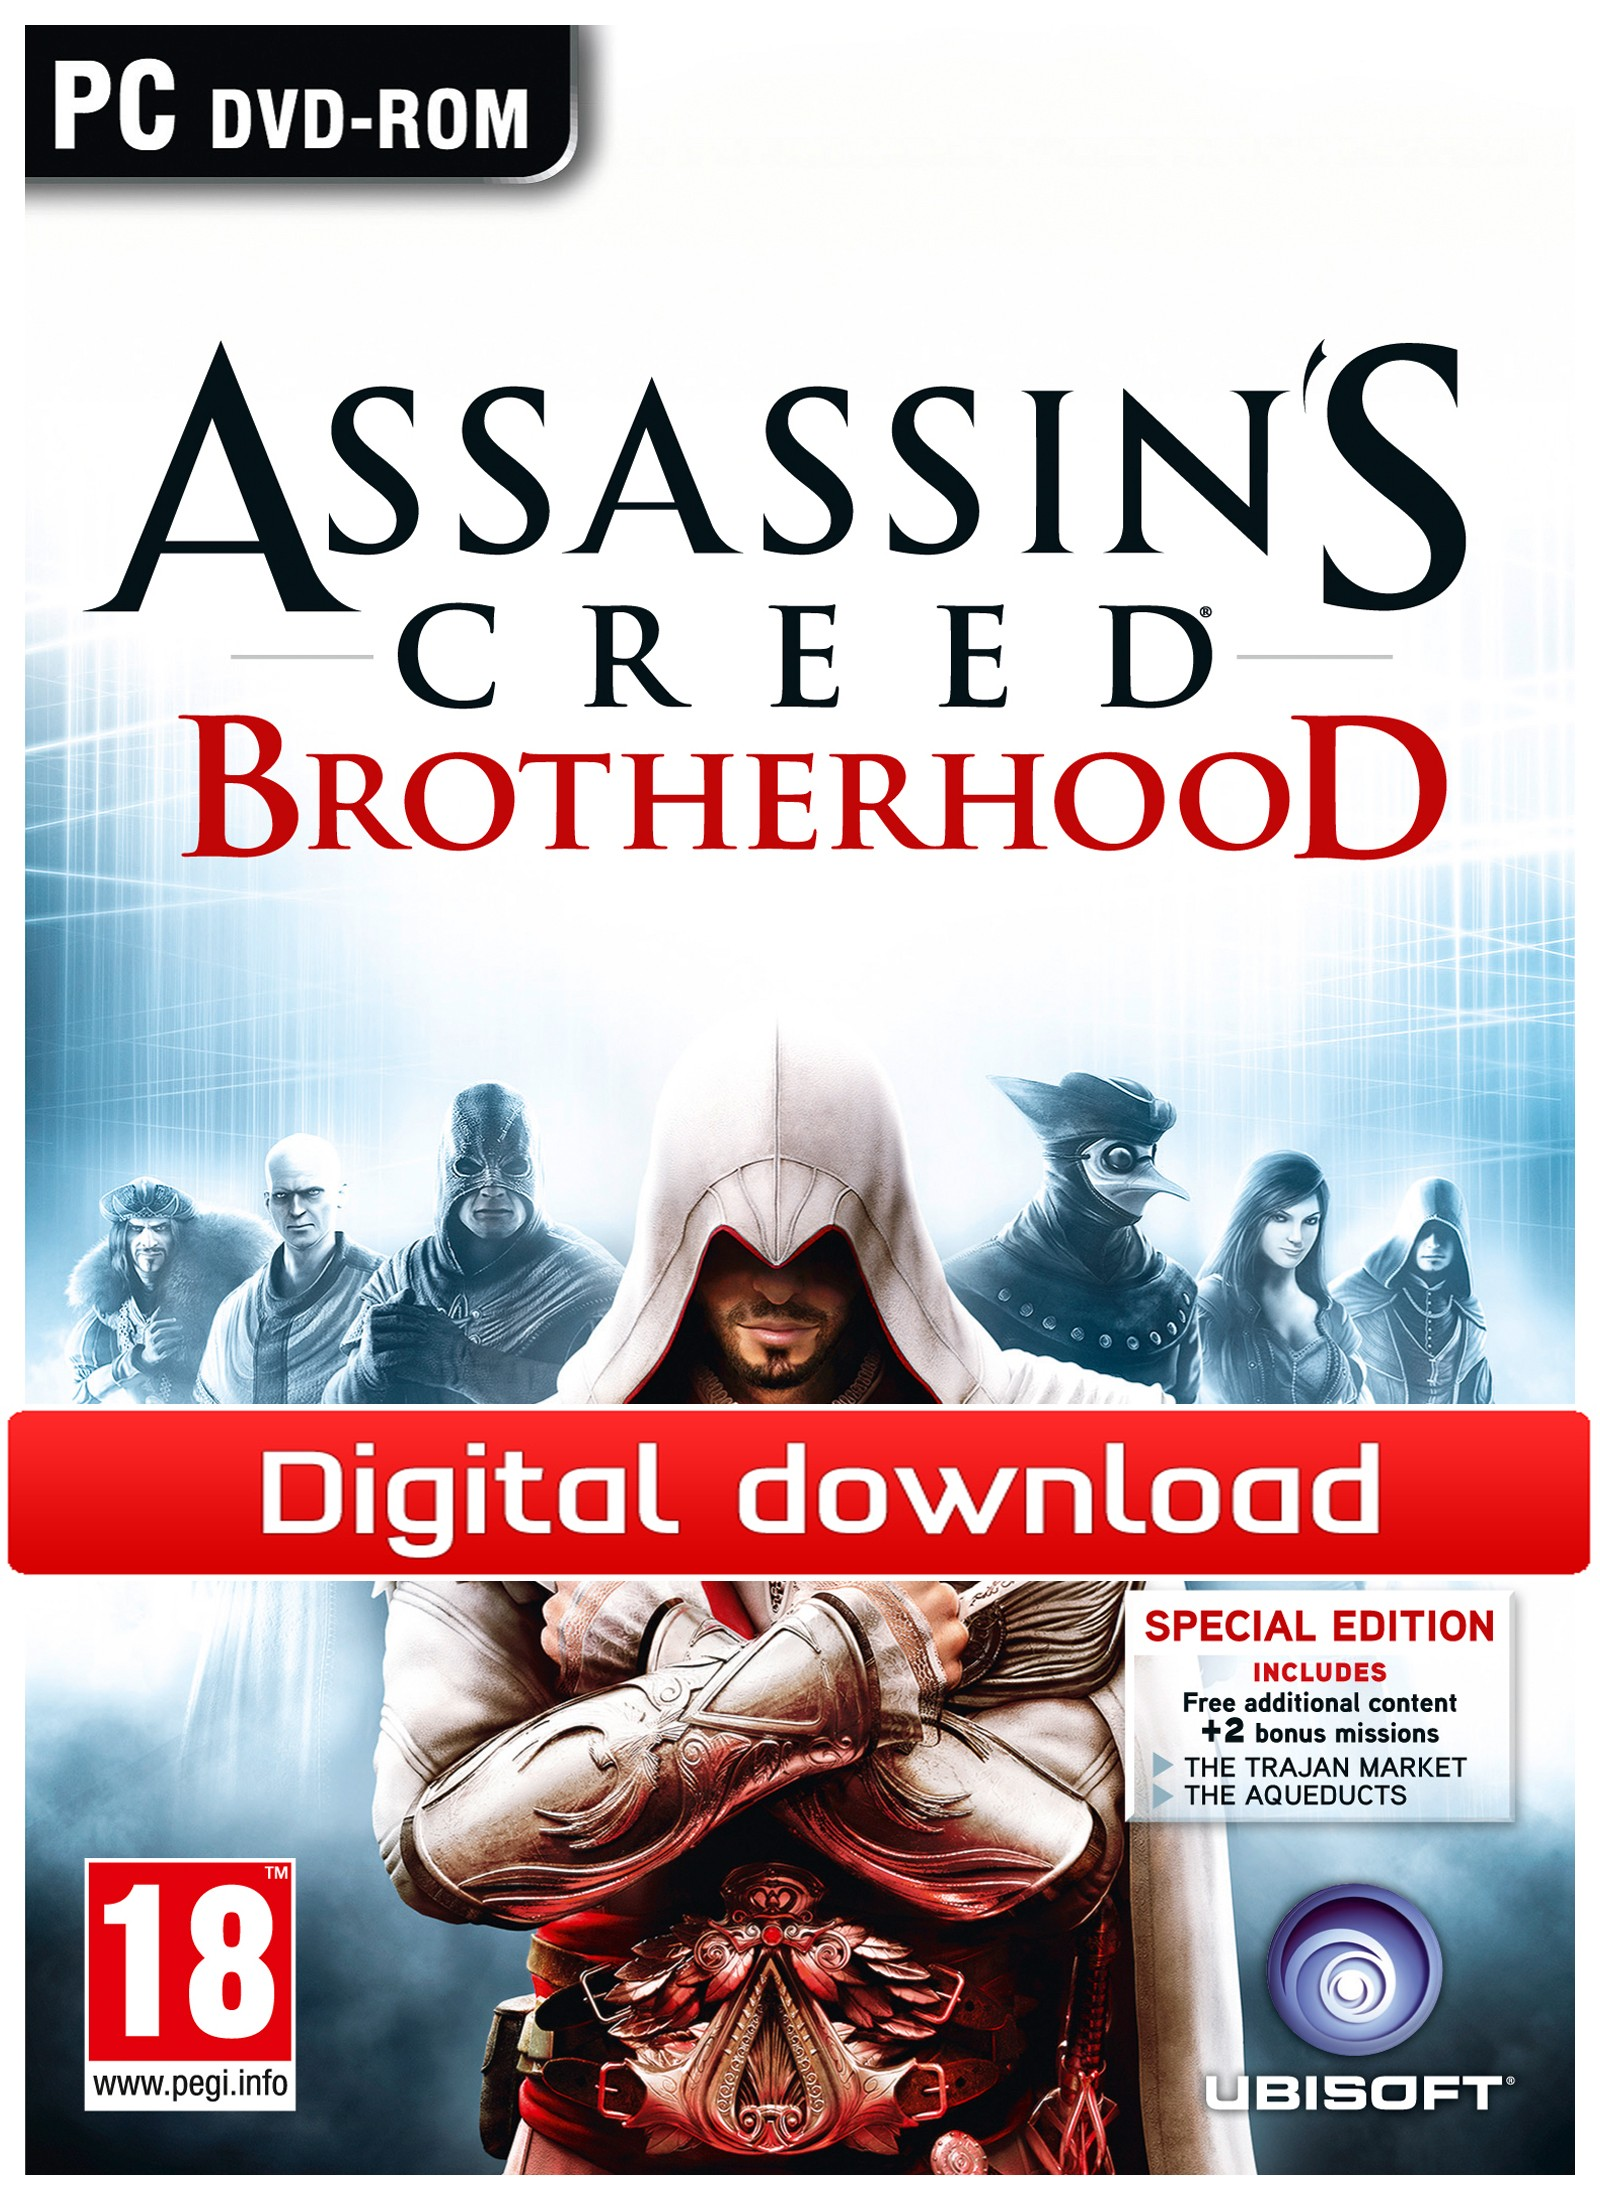 26056 : Assassins Creed: Brotherhood, Deluxe (PC nedlastning)